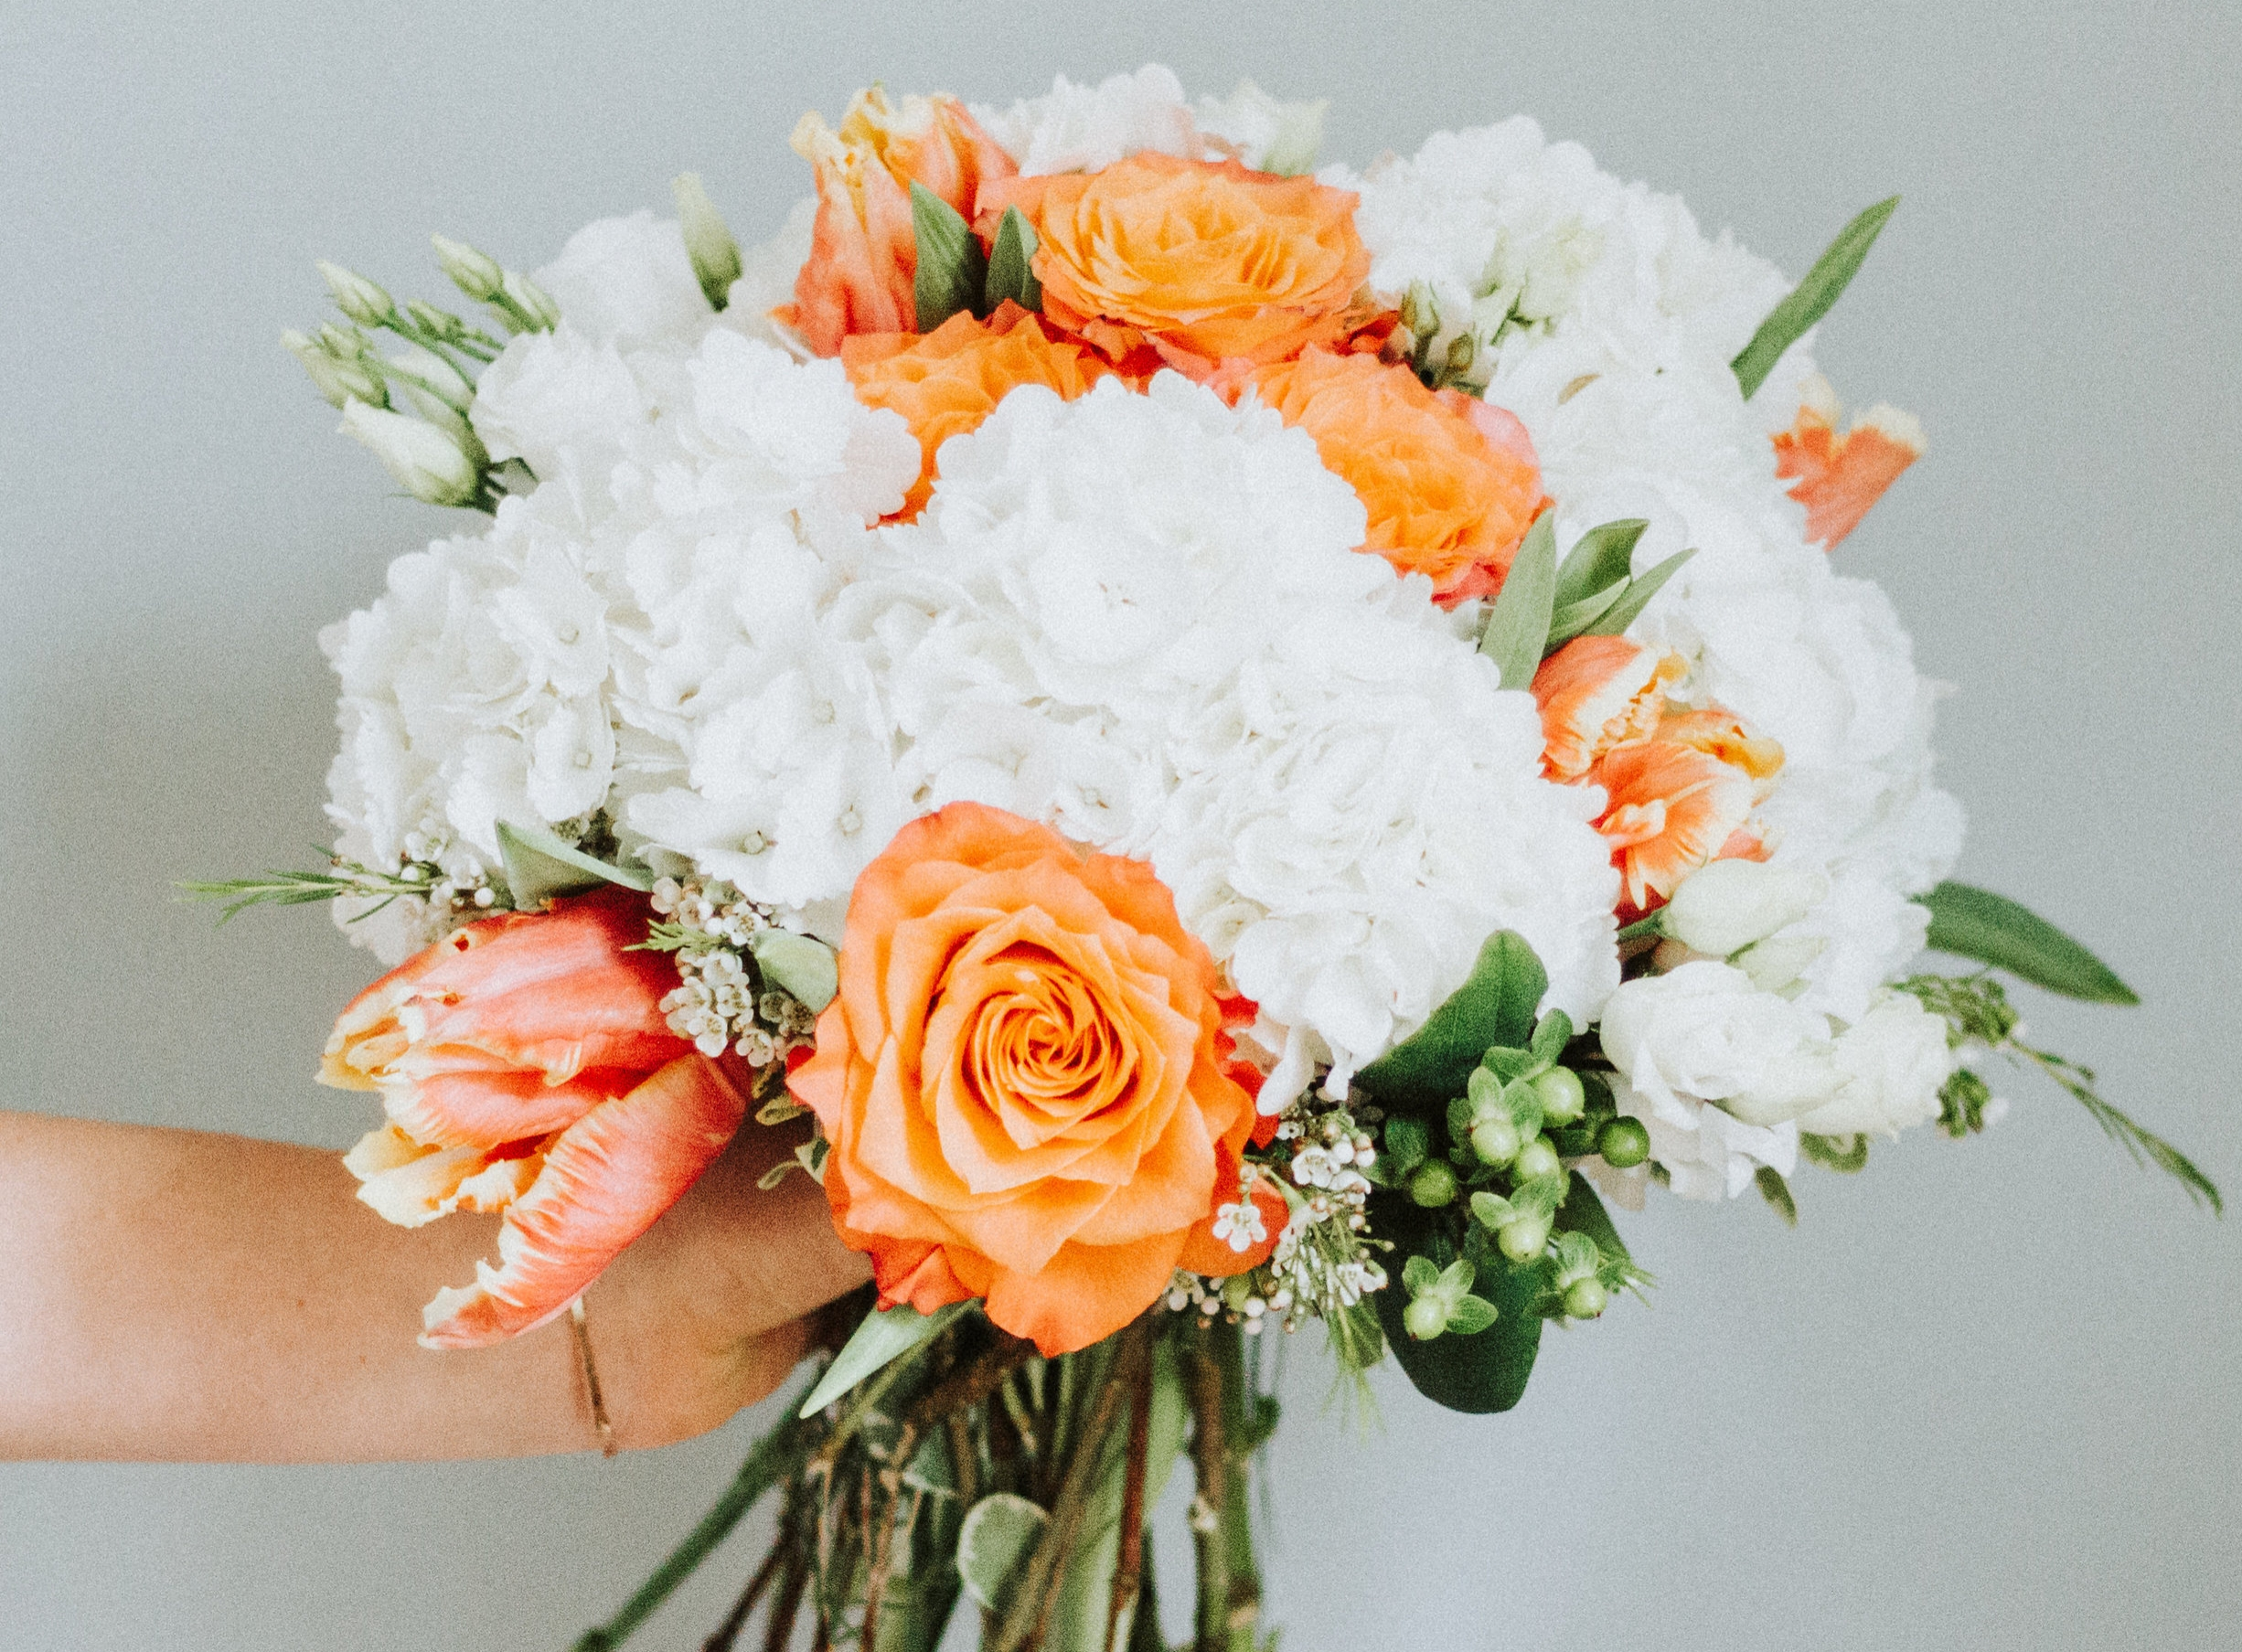 Love & Luster Floral Design White Hydrangea Bouquet with orange roses, tulips and berries